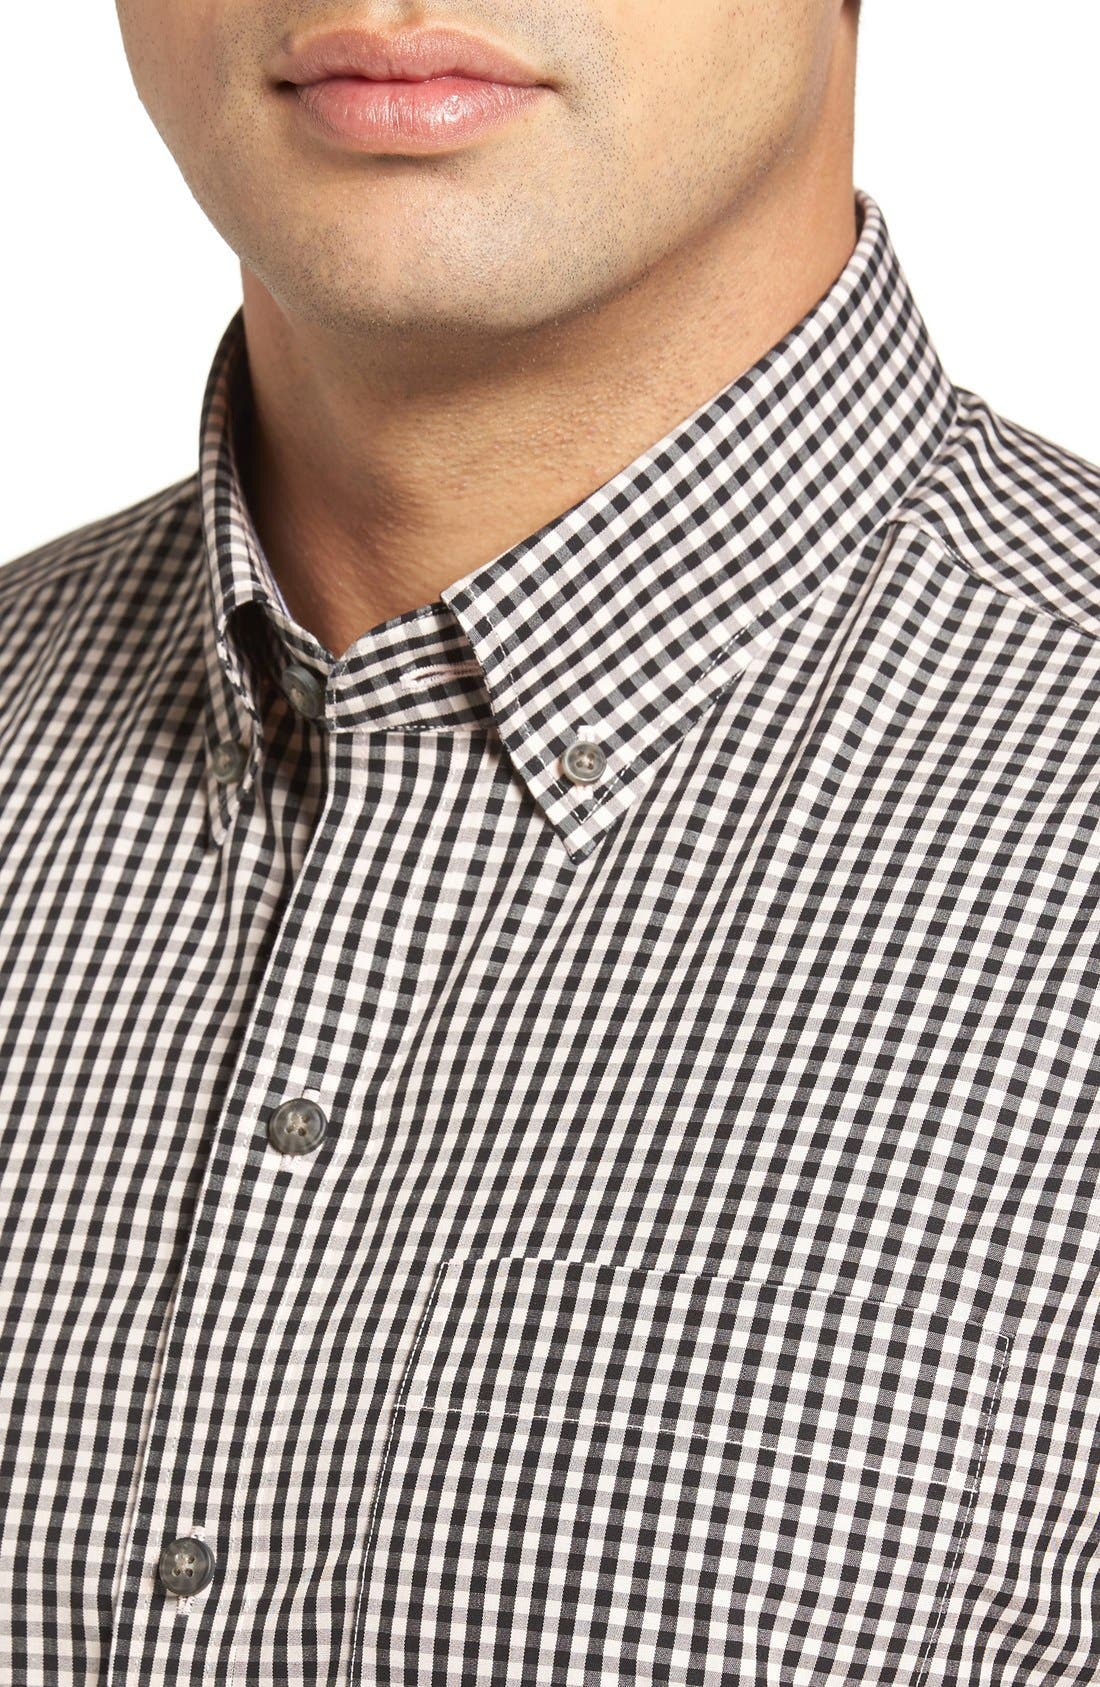 'Willard' Check Sport Shirt,                             Alternate thumbnail 2, color,                             019